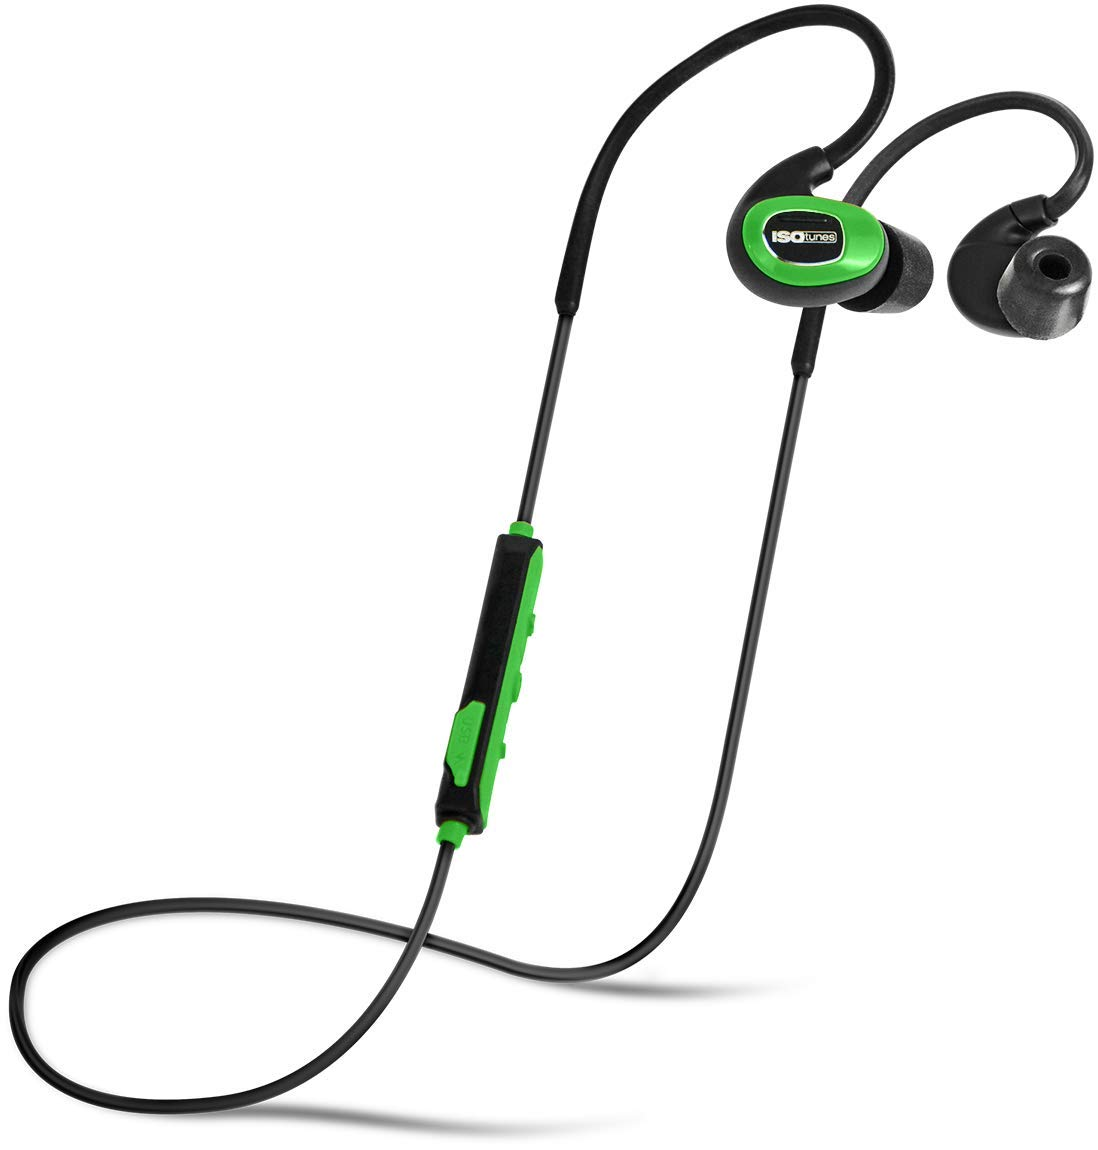 ISOtunes PRO Industrial (No Microphone), Bluetooth Earplug Headphones, 27 dB Noise Reduction Rating, 10 Hour Battery, 79 dB Volume Limit, OSHA Compliant Bluetooth Hearing Protector (Safety Green) by ISOtunes